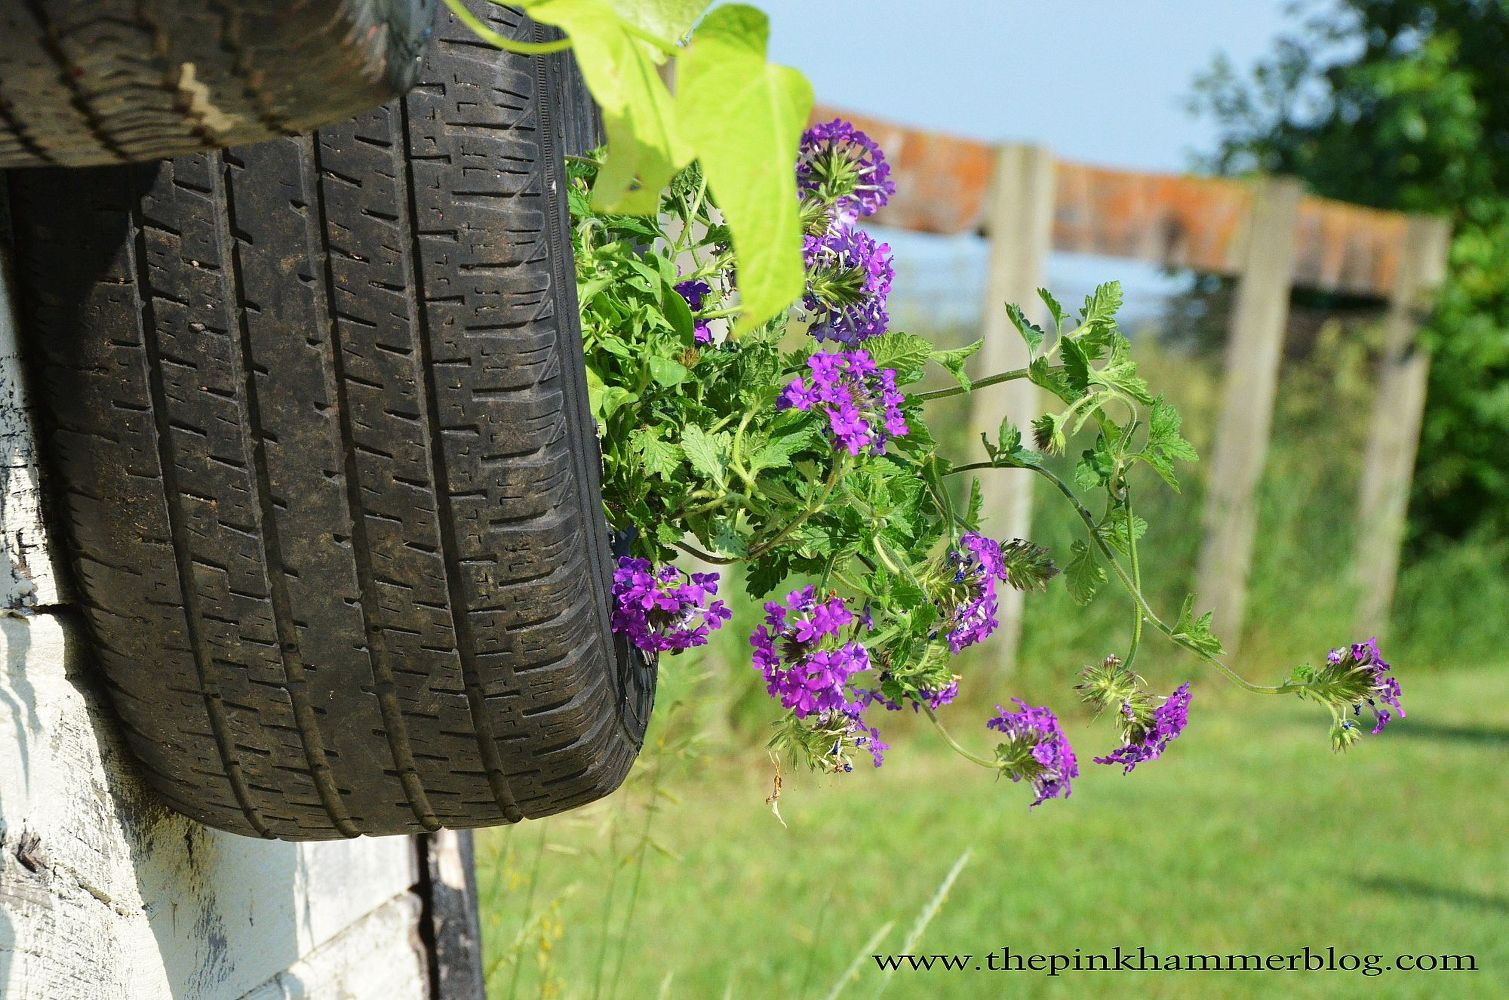 from-old-tires-to-upcycled-tire-planters-diy-trash-to-treasure-flowers-gardening-outdoor-living.1.jpg